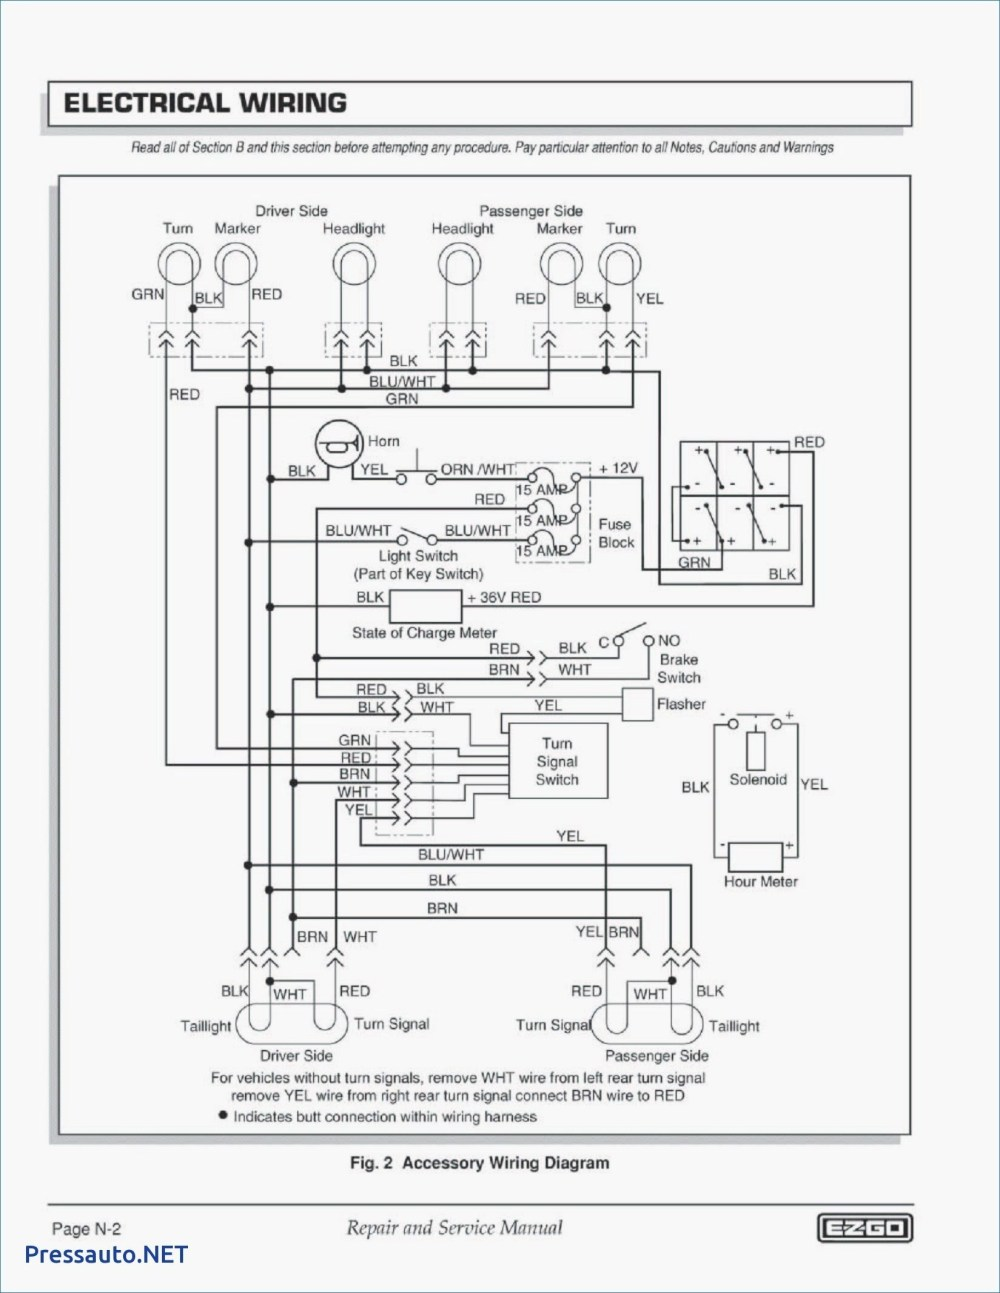 medium resolution of wrg 4948 1990 ez go golf cart wiring diagram11 top 1990 ezgo wiring diagram basic